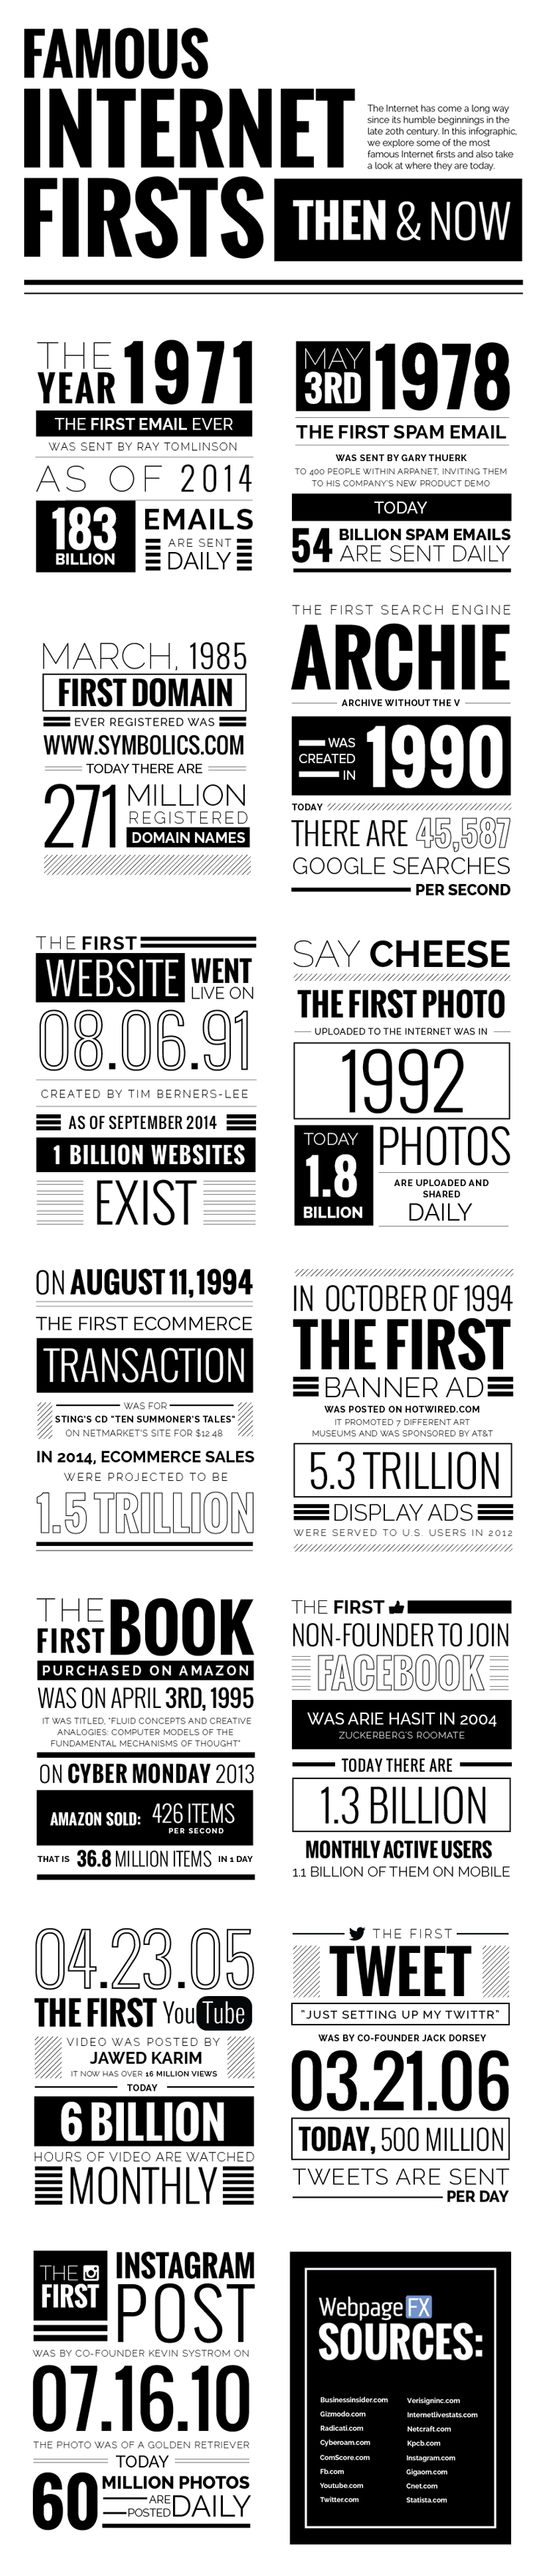 Famous Internet Firsts: Then & Now